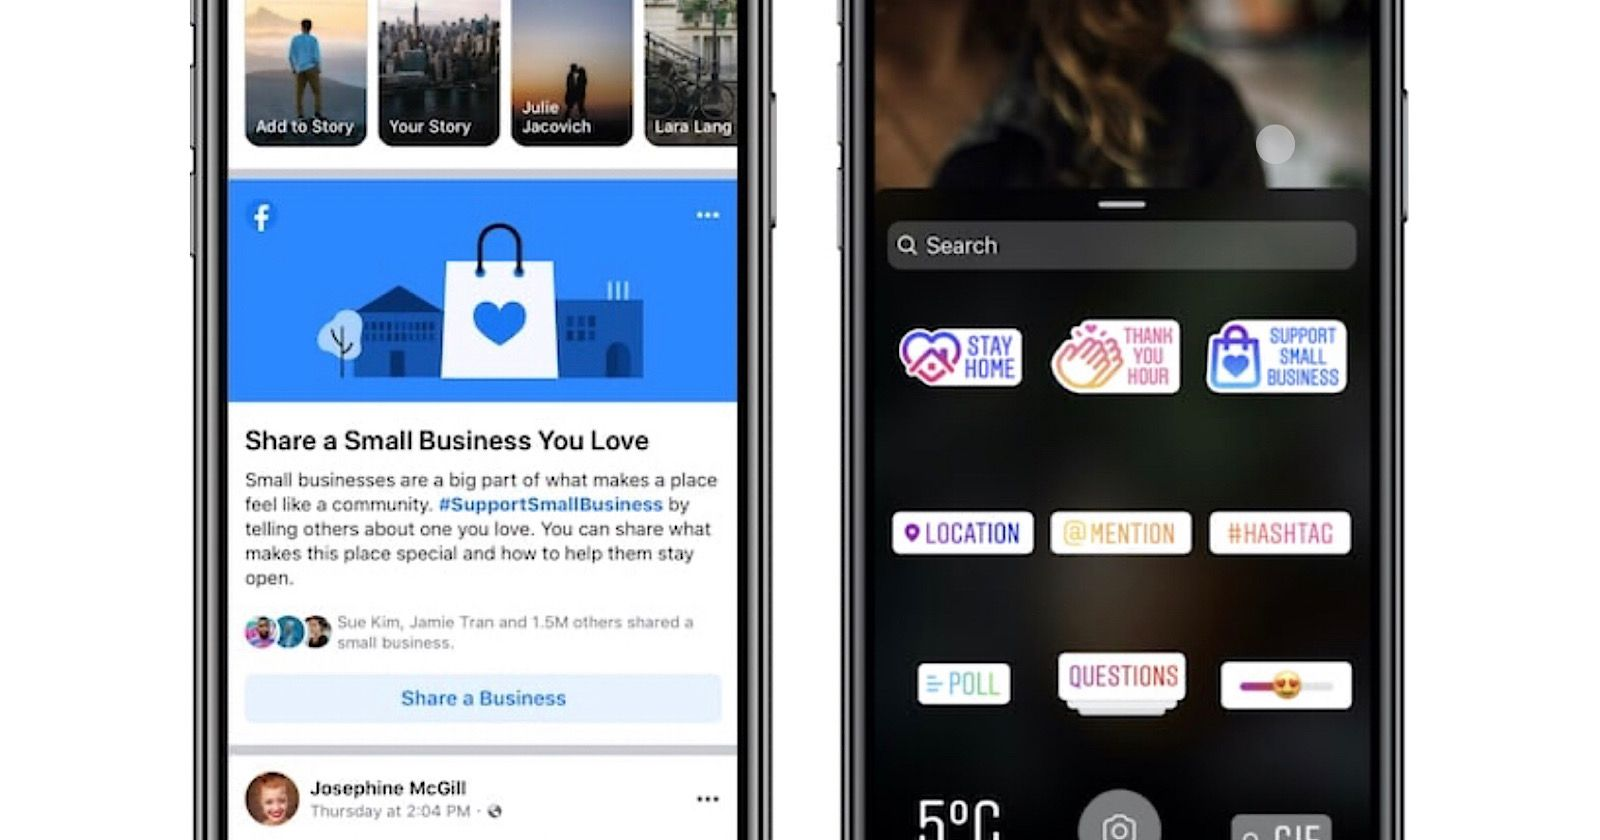 Facebook instagram add more ways to support local